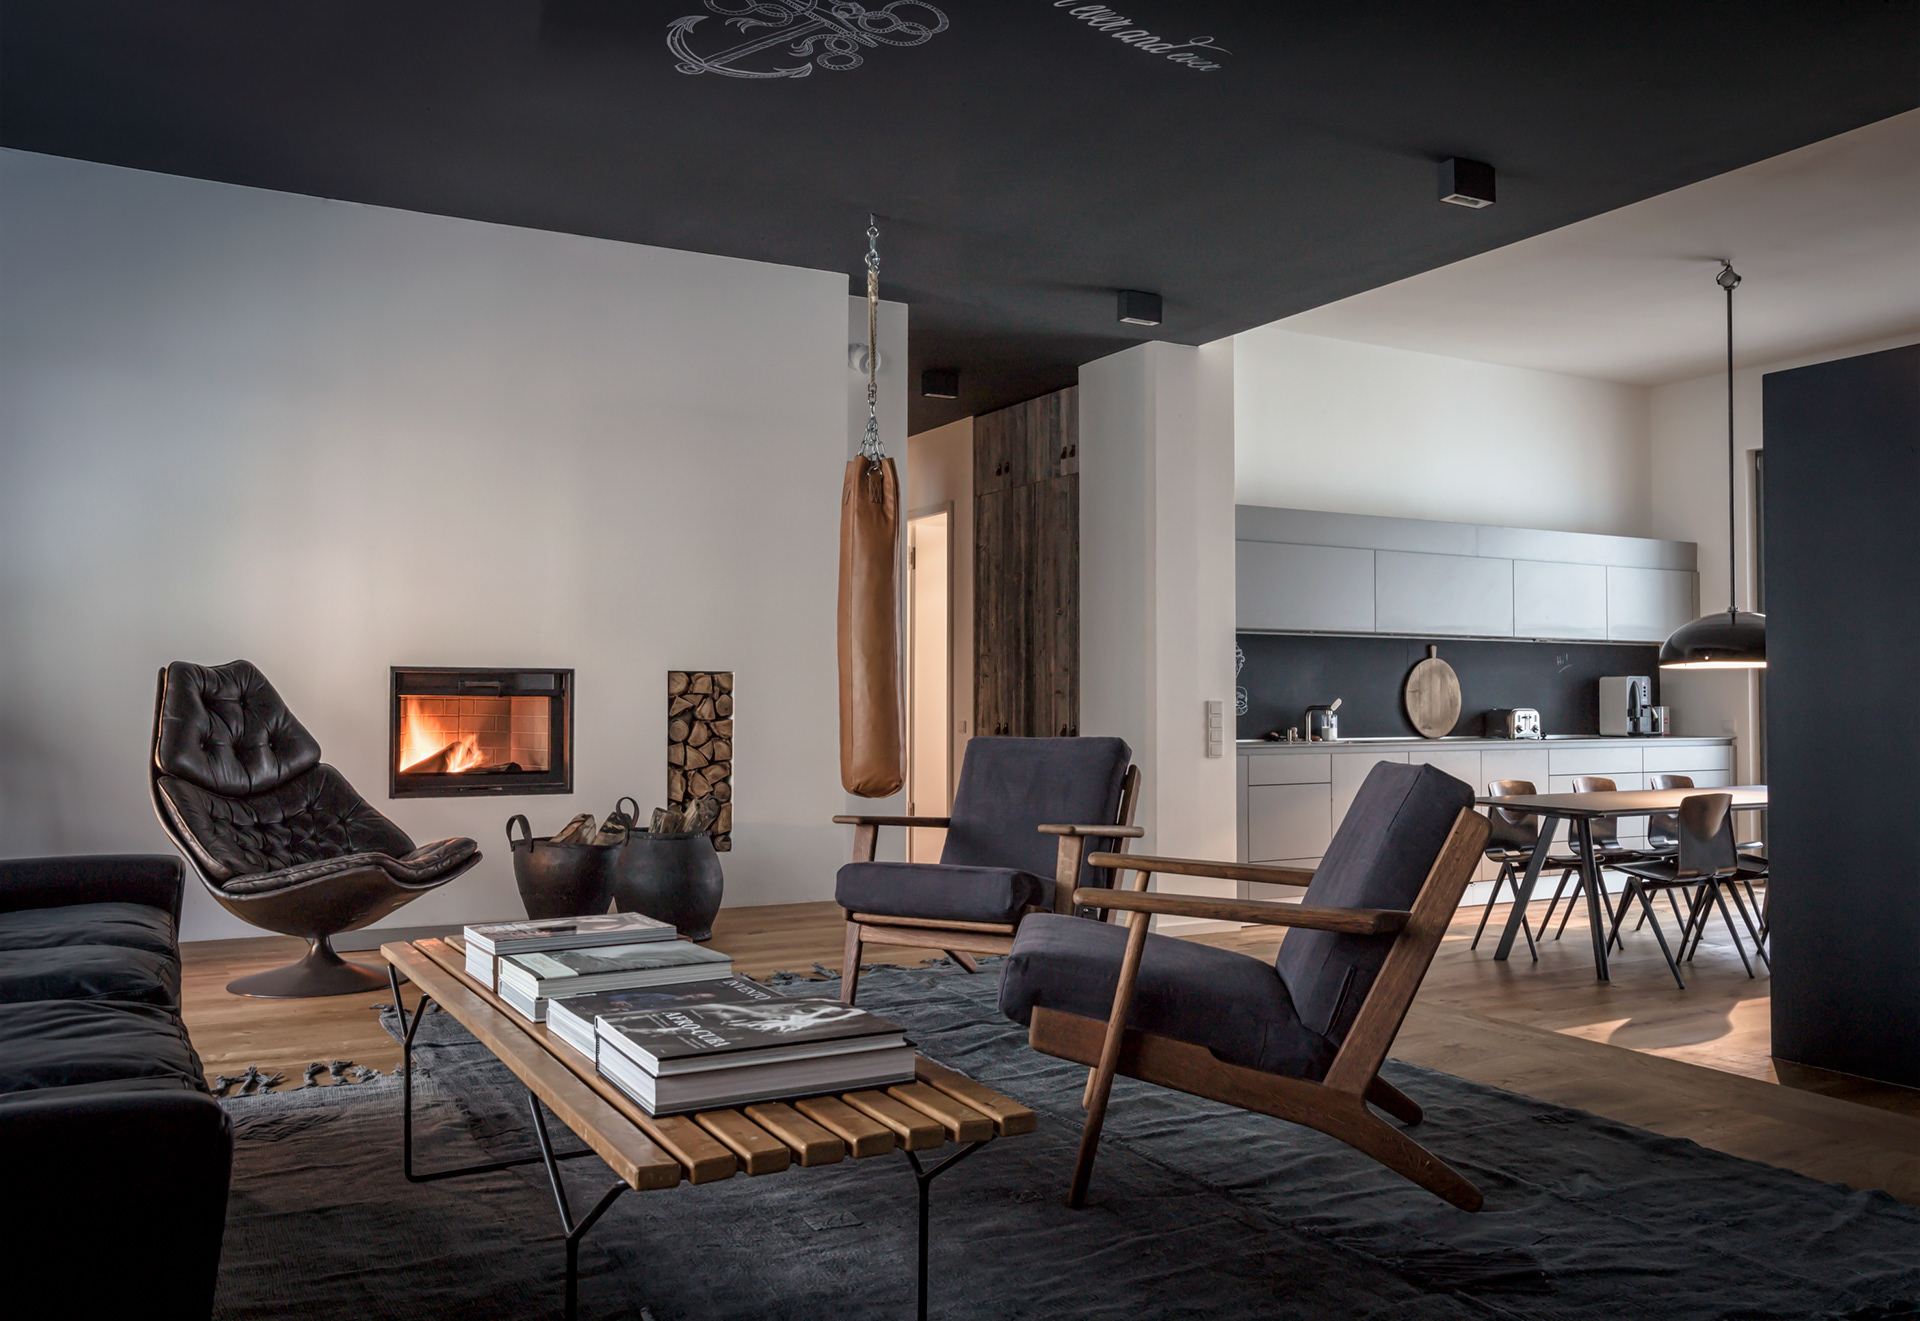 Get The Inspiration Coming With This Interior Design in Berlin